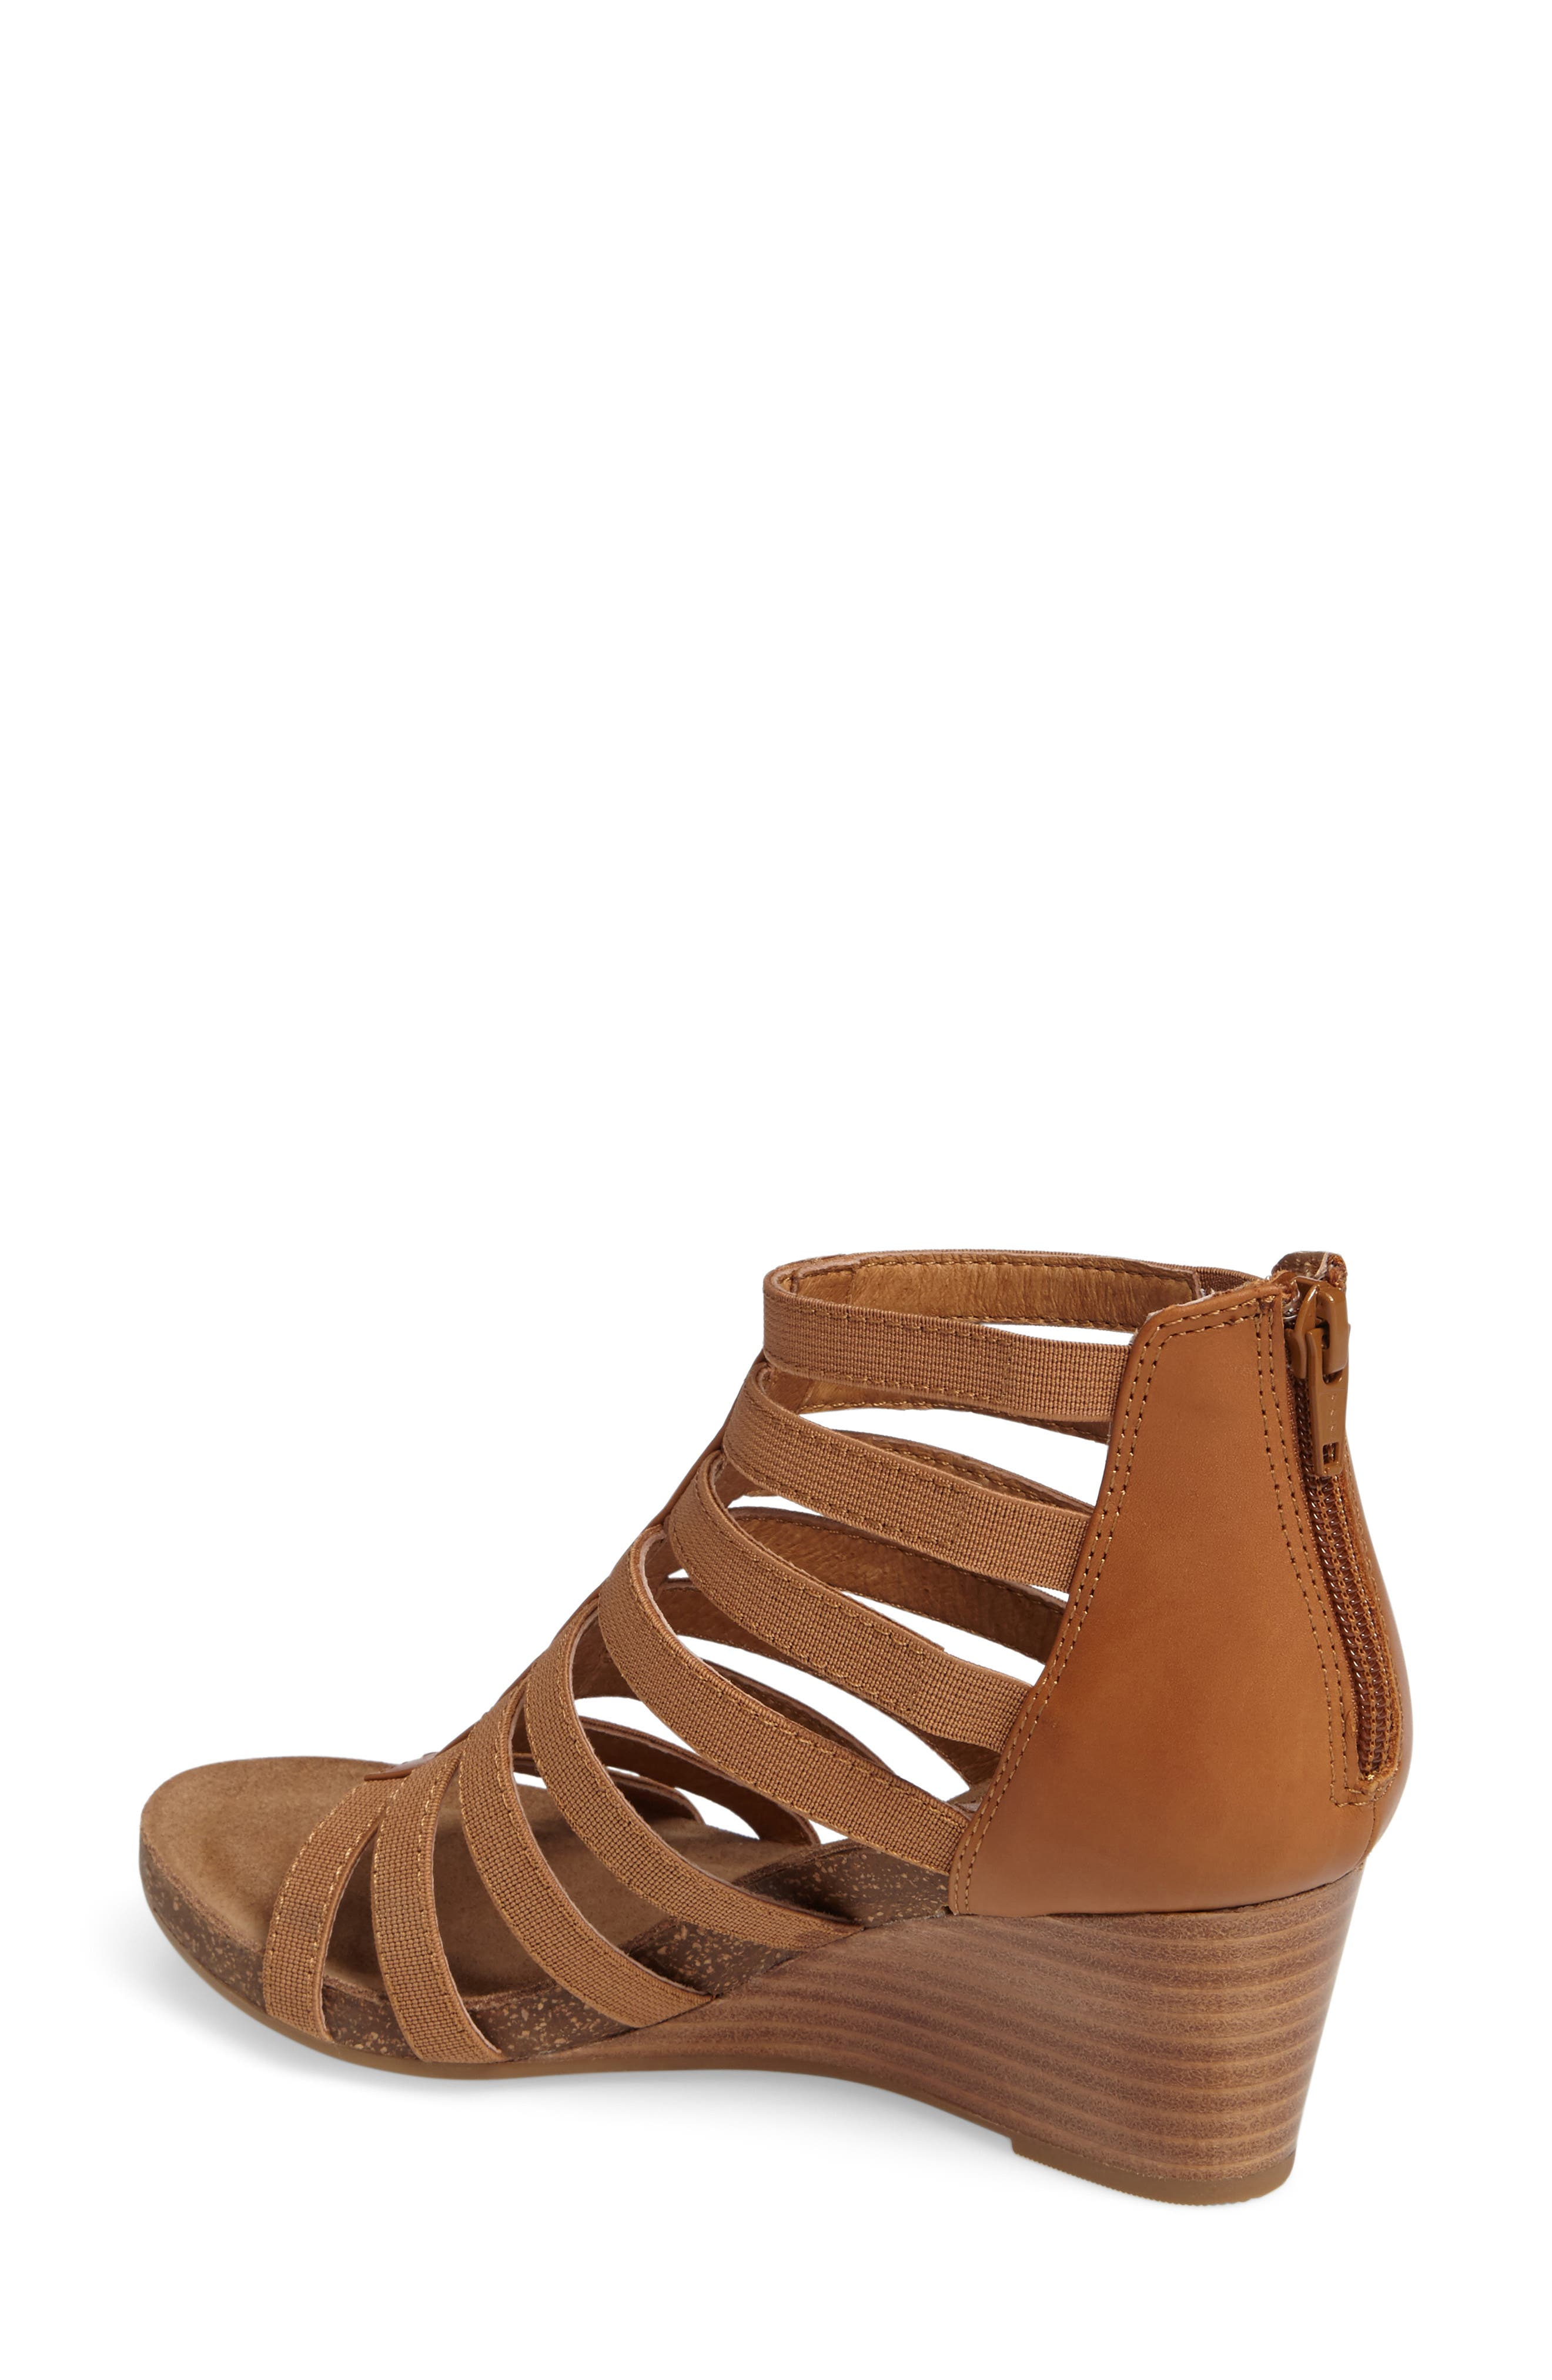 Mati Caged Wedge Sandal,                             Alternate thumbnail 5, color,